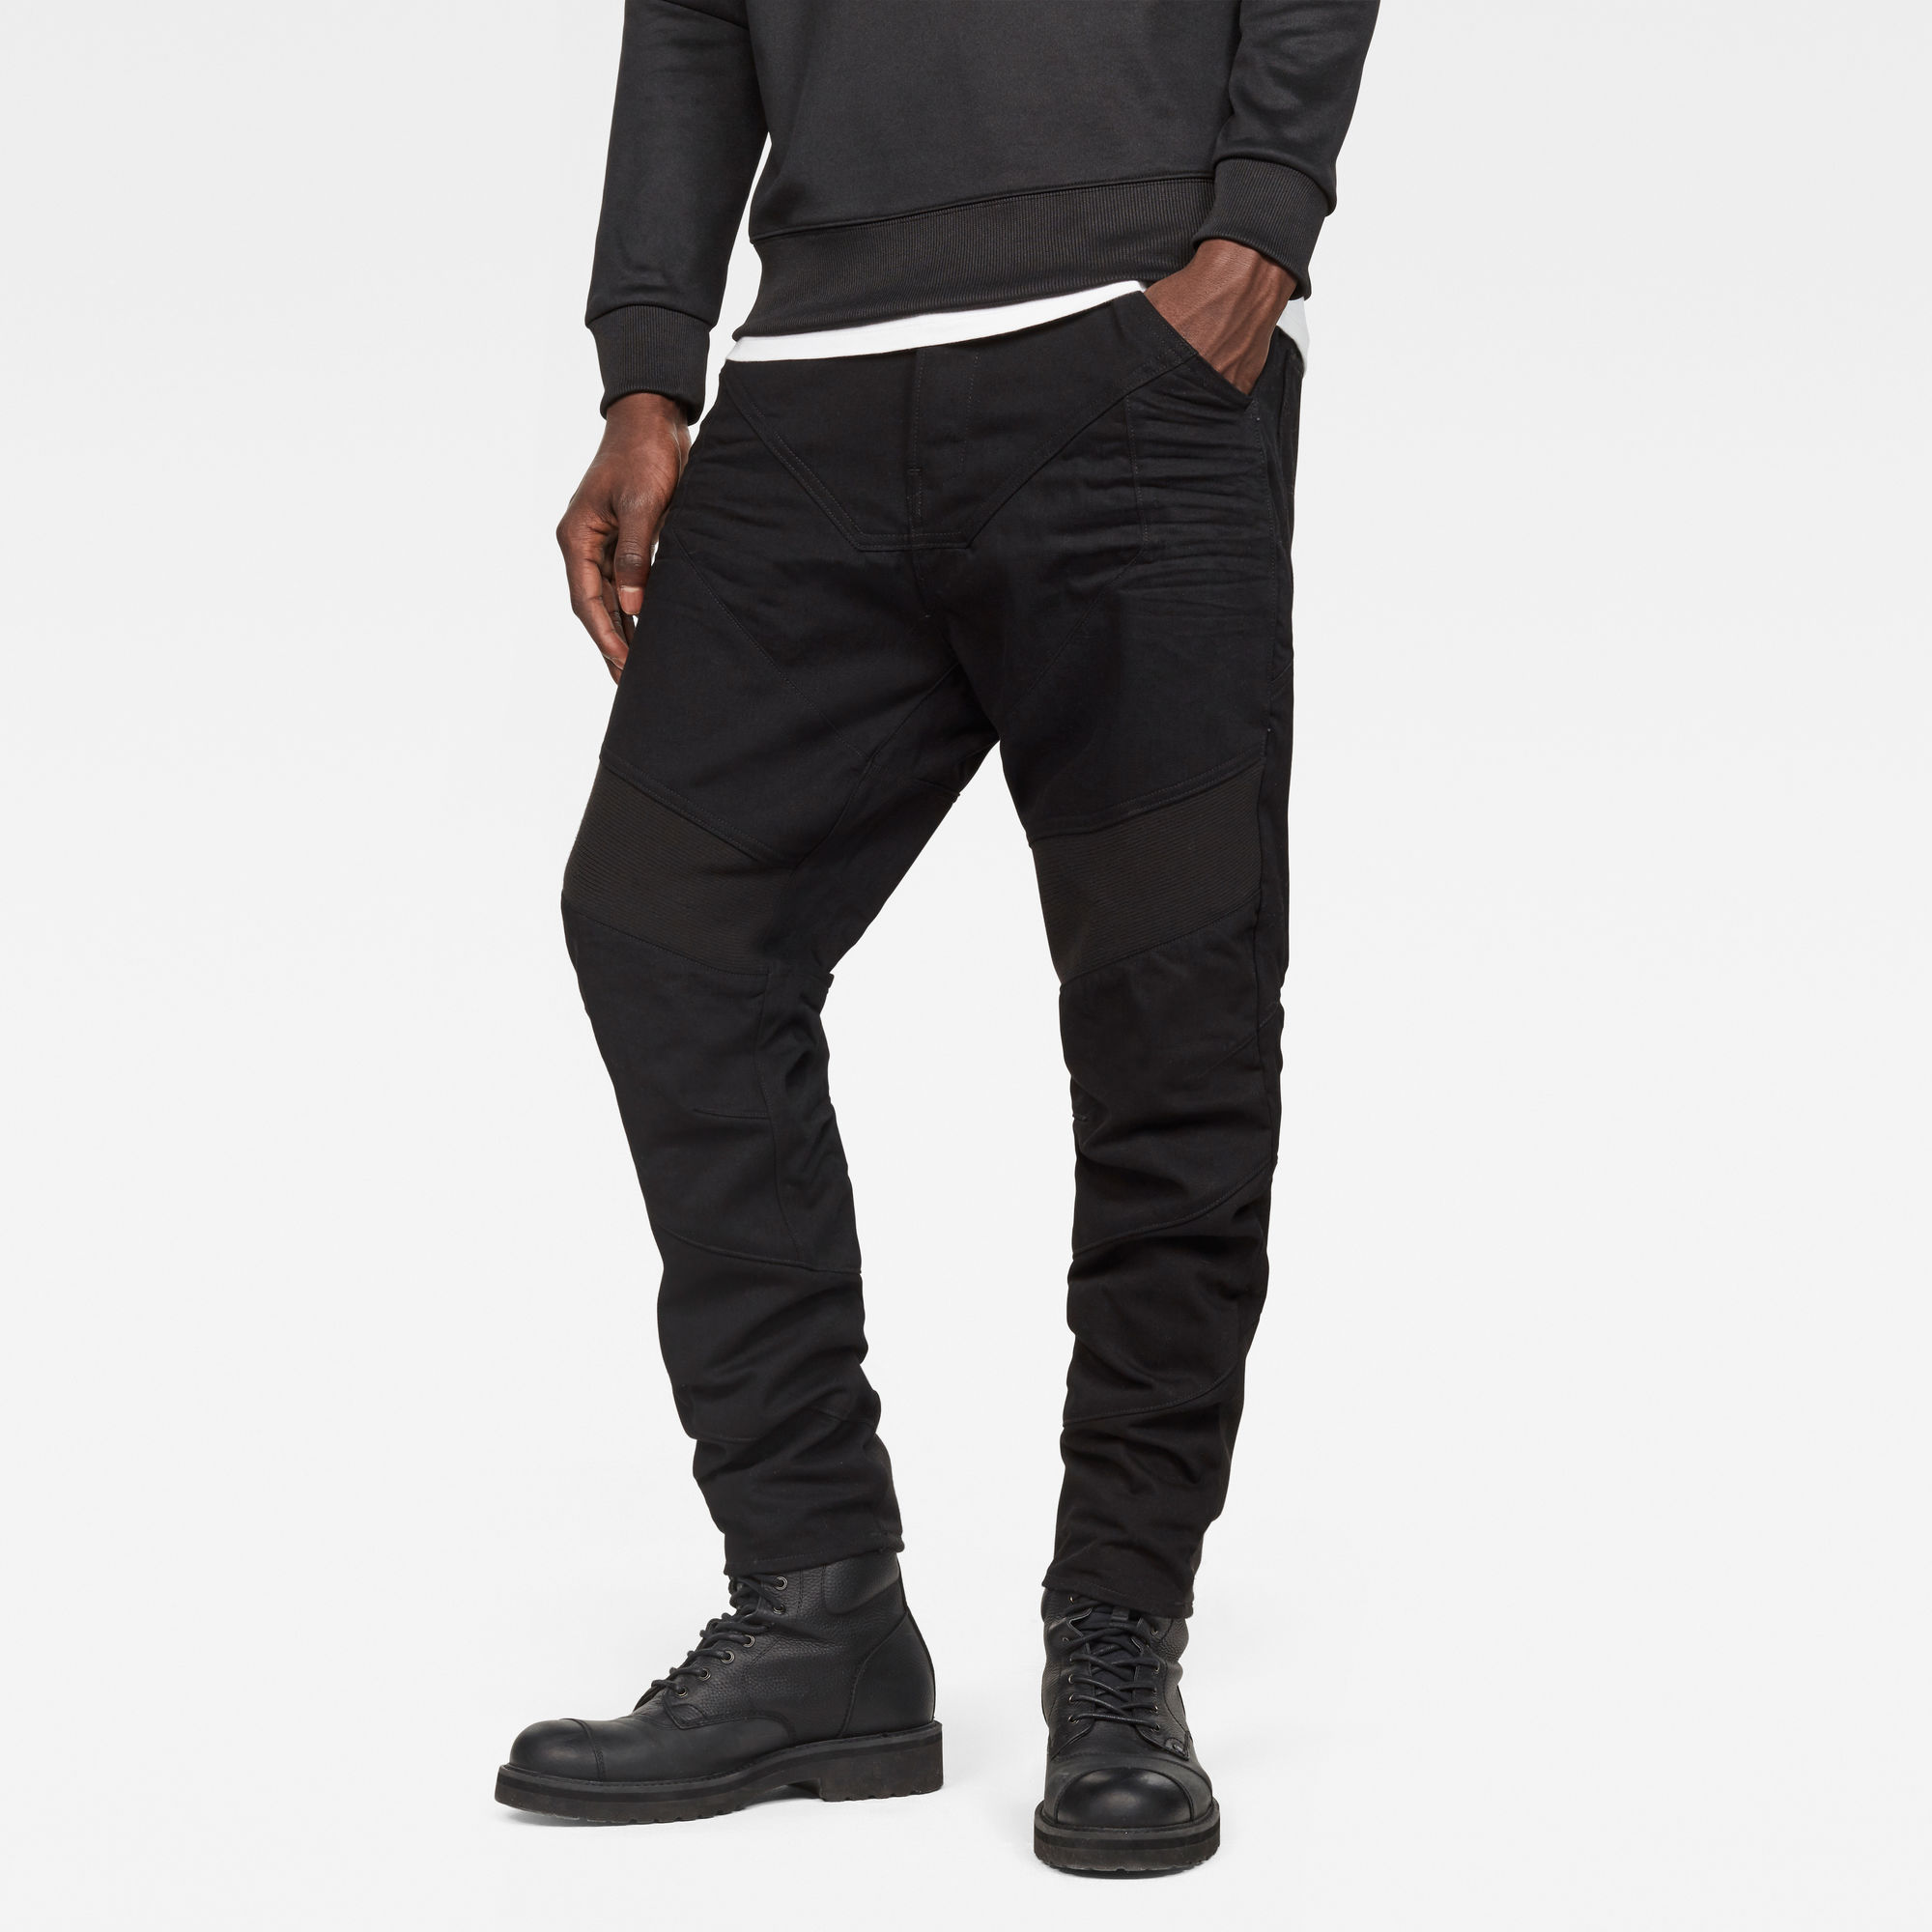 Motac-X Deconstructed Loose Cropped Jeans